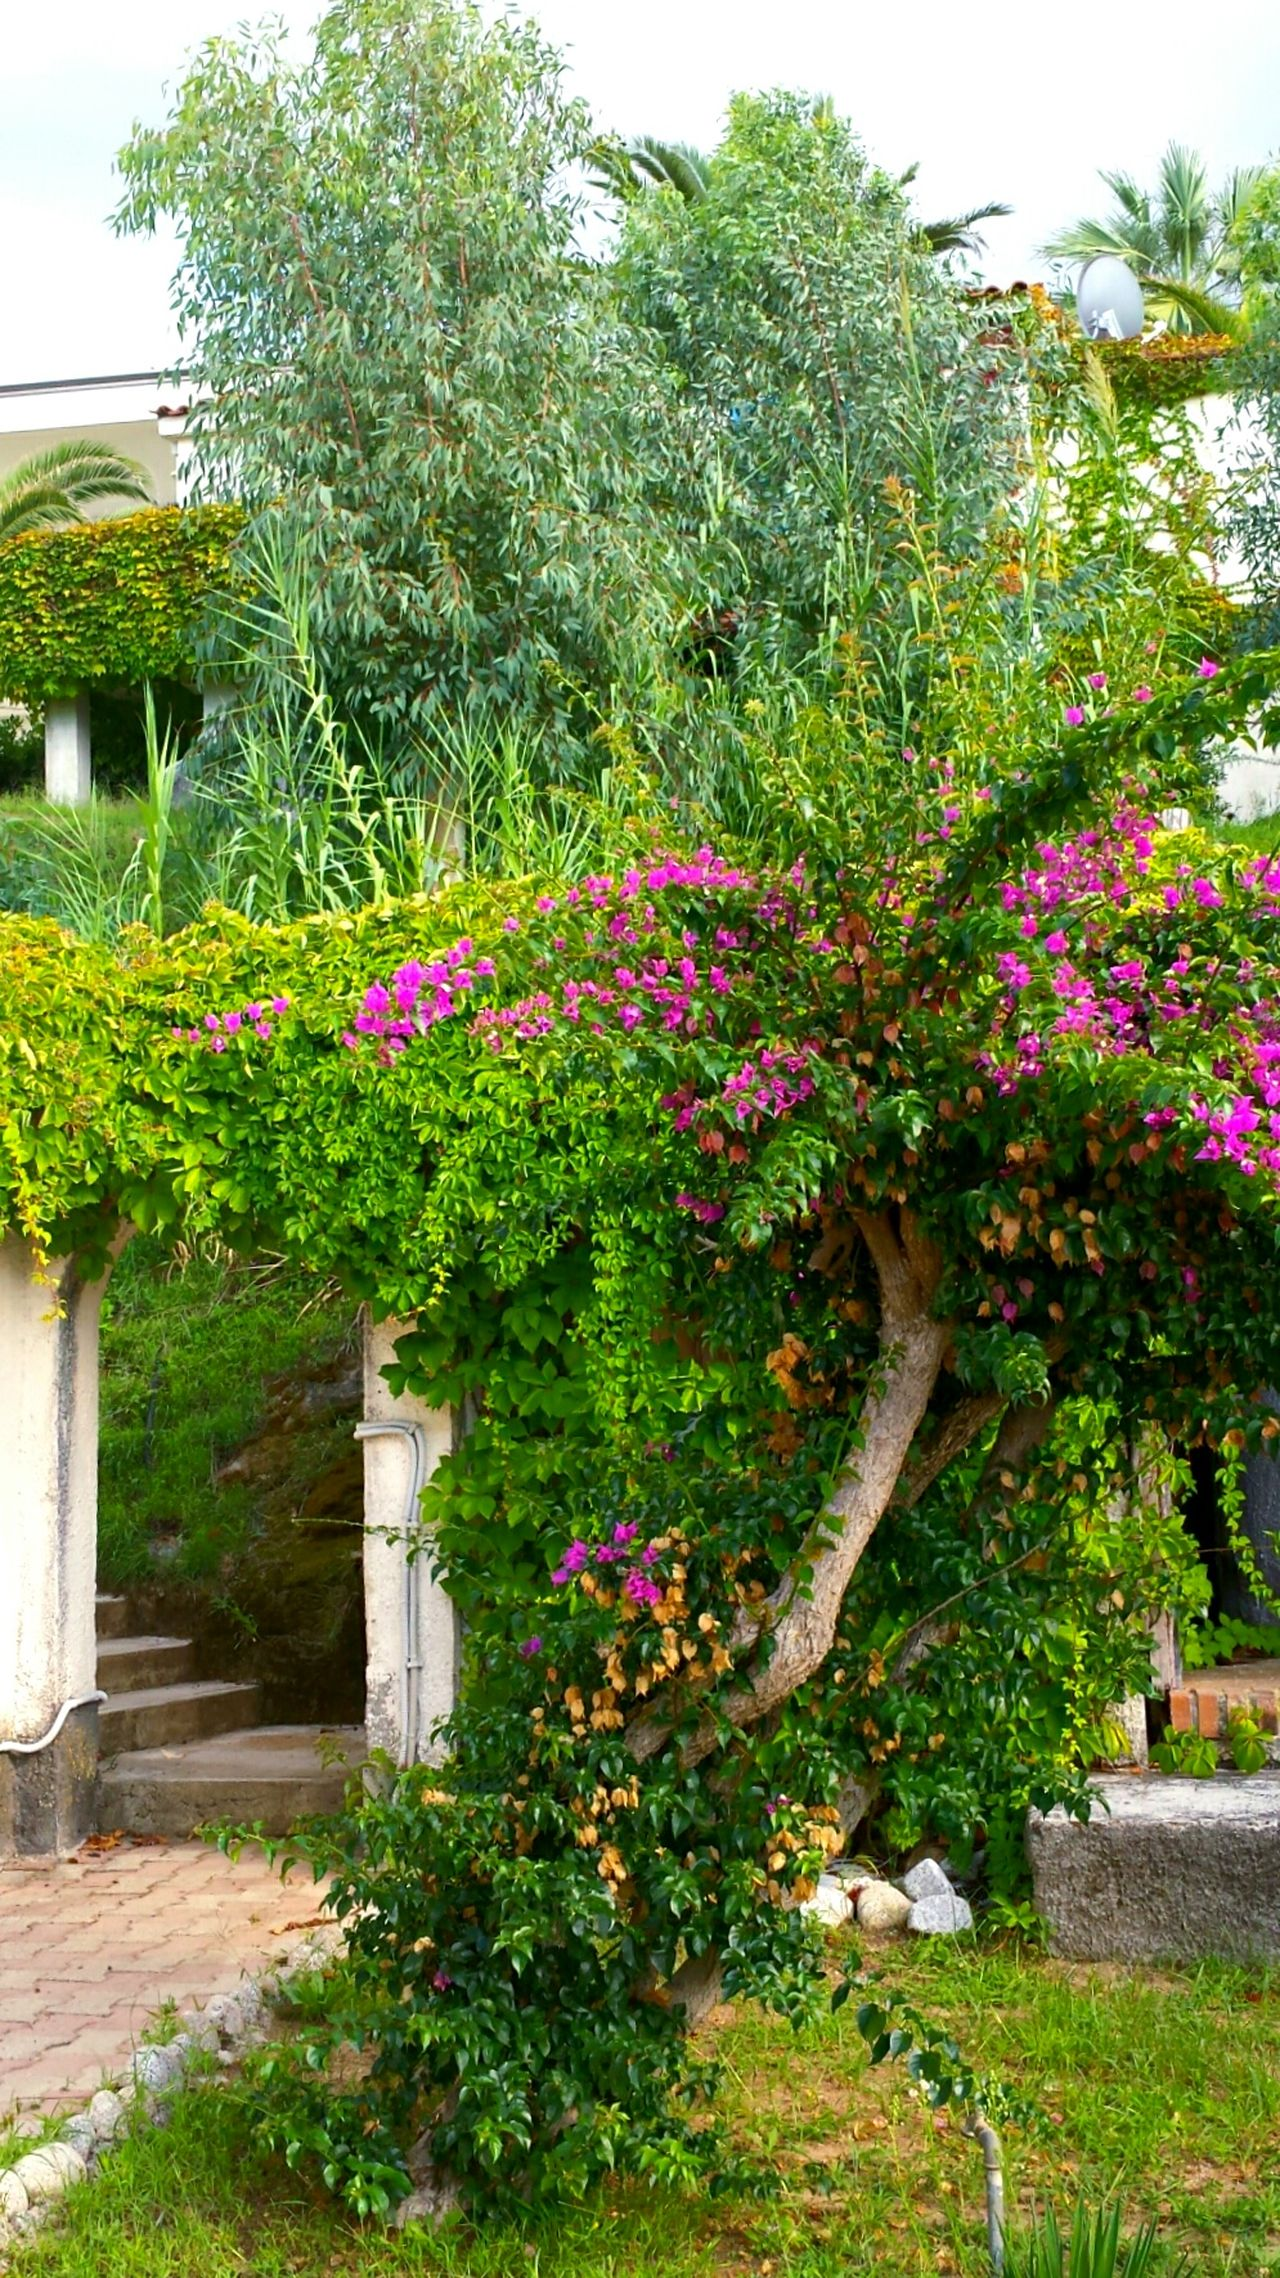 Ladyphotographerofthemonth Flowers,Plants & Garden Flower Collection Bougainville Green Green Green!  Entrance Gate Entrance Way Flowering Bushes Trees And Bushes Torbogen to hotel garden. Mediterranean Nature Beautiful Nature Beautiful Scenery Efeu Bewachsene Fassade Efeu An Mauer Eingangstor Flower Porn Flowers, Nature And Beauty Plants And Flowers Pink Flowers Wonderful View Tropical Paradise Tropical Flowers Greenery Stairs